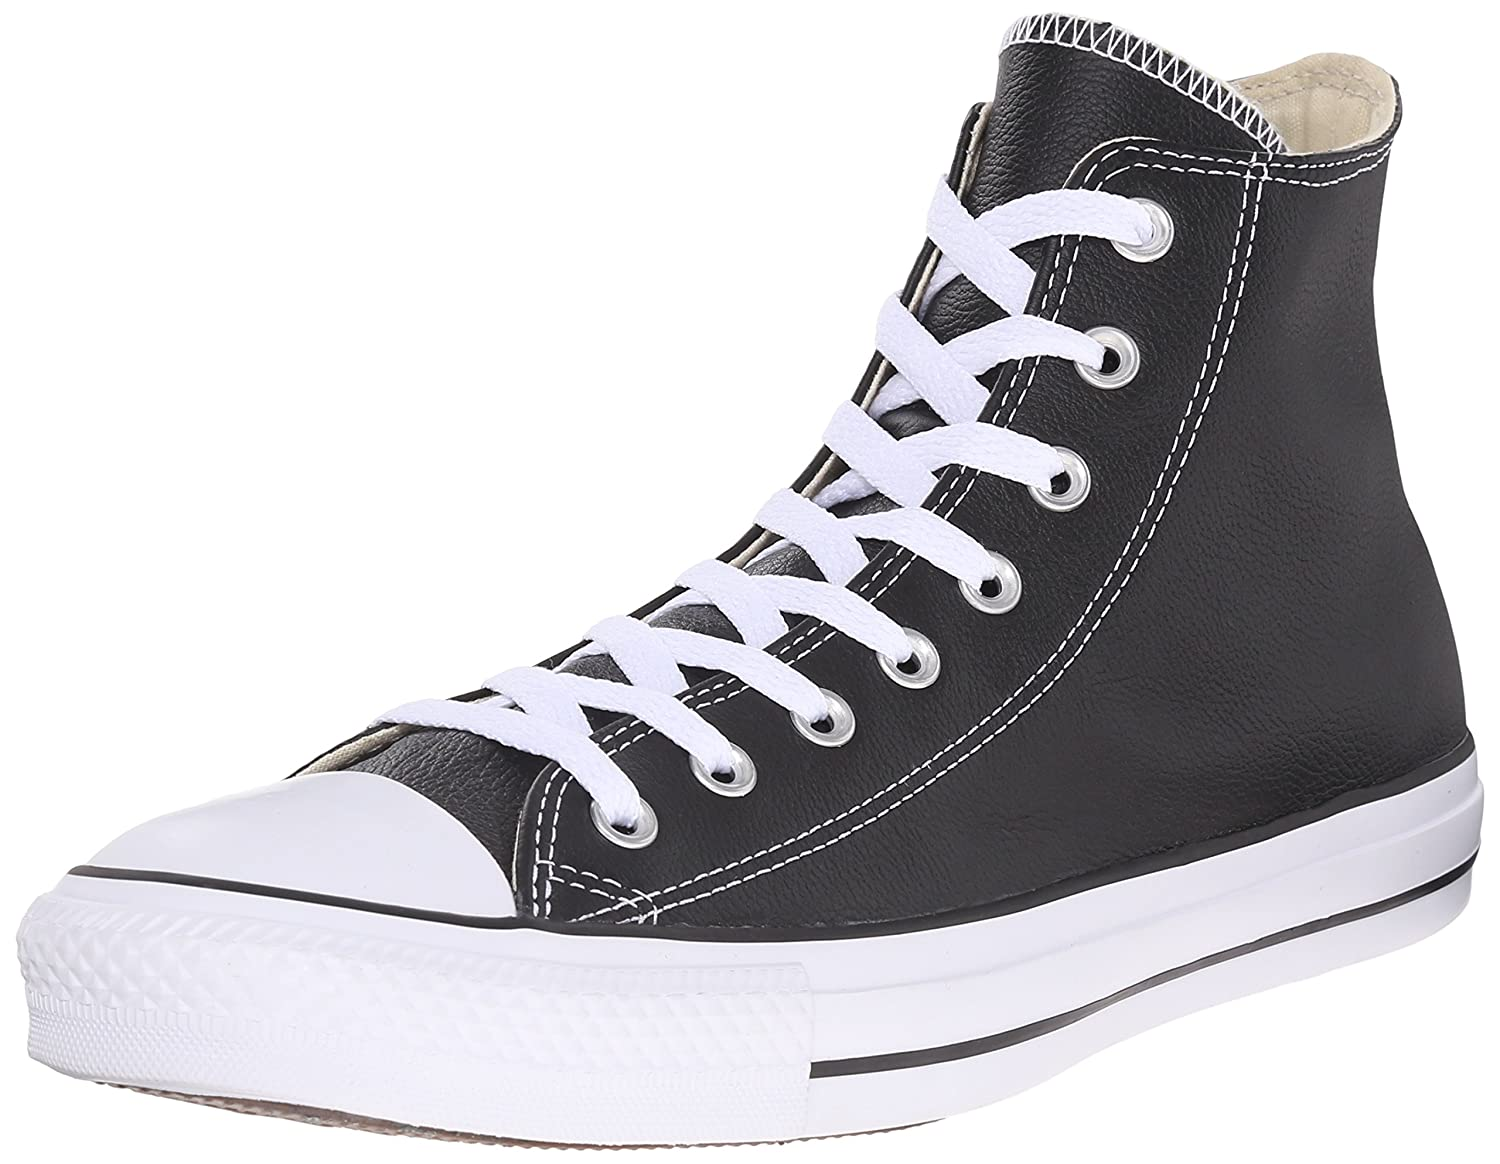 Converse Chuck Taylor All Star Leather  High Top Sneaker B007PBF27S  Leather 6.5 B(M) US Women / 4.5 D(M) US Men|Black cca63b